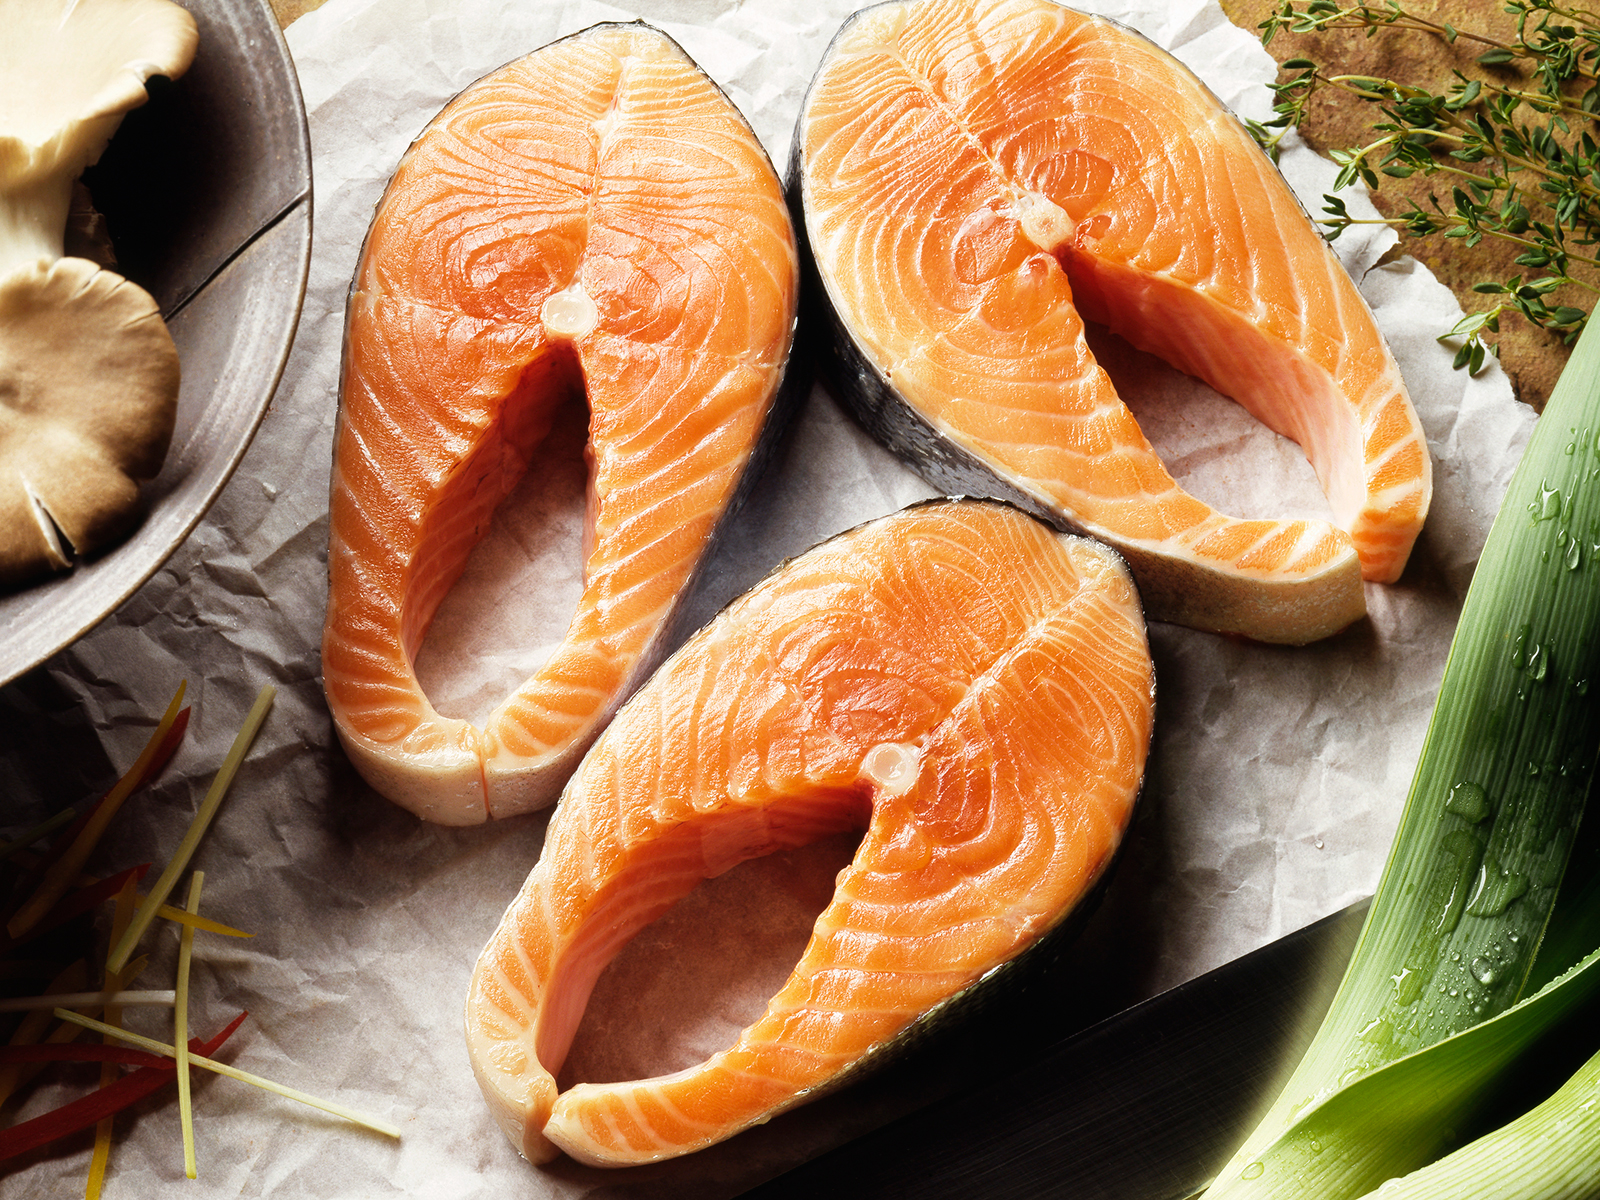 salmon genetically modified